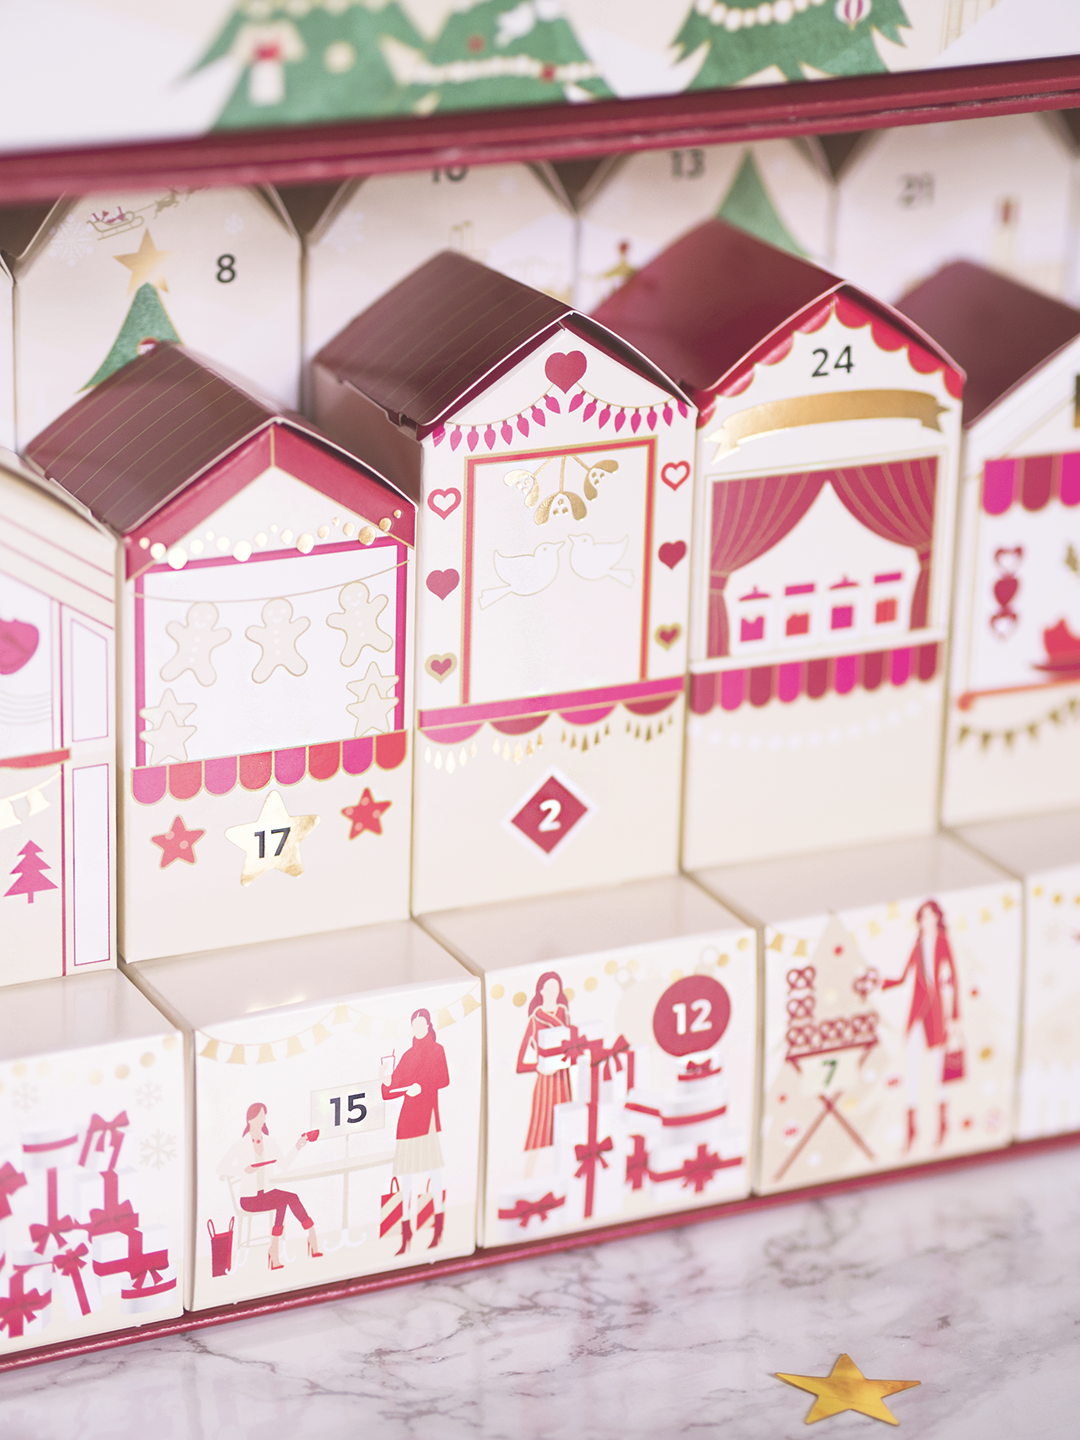 M&S Beauty Advent Calendar Sneak Peak and Launch